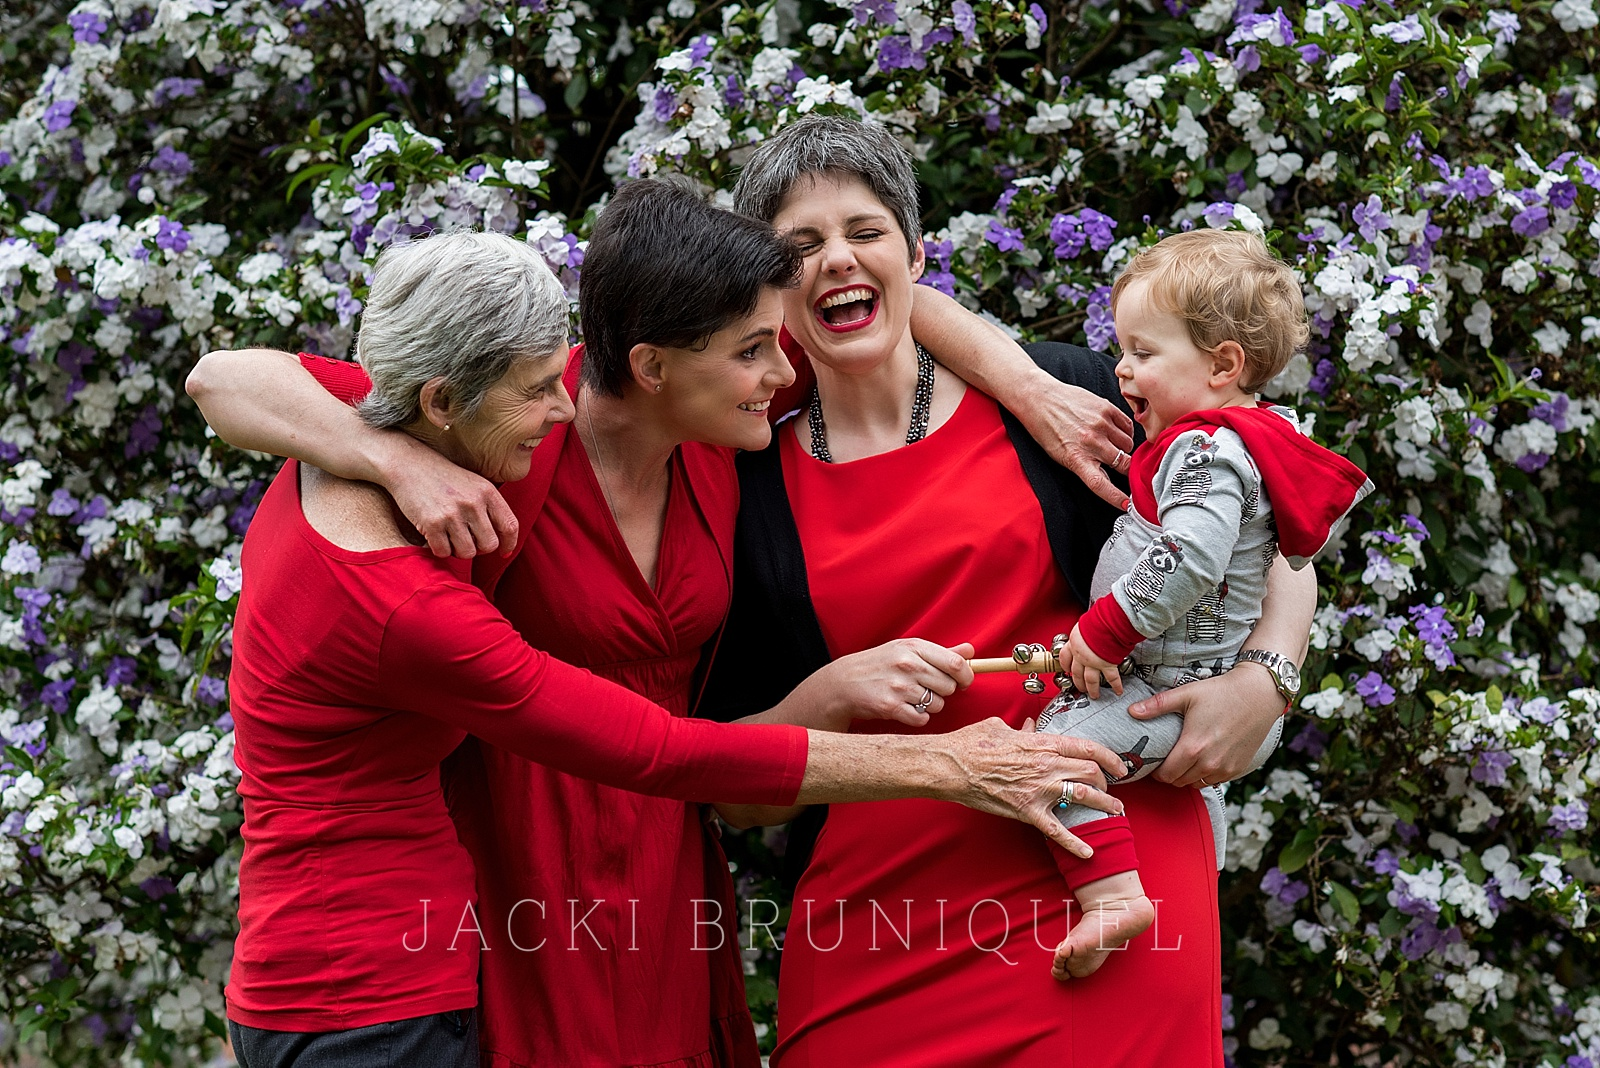 Creative family shoot shot by top South African documentary photographer Jacki Bruniquel.